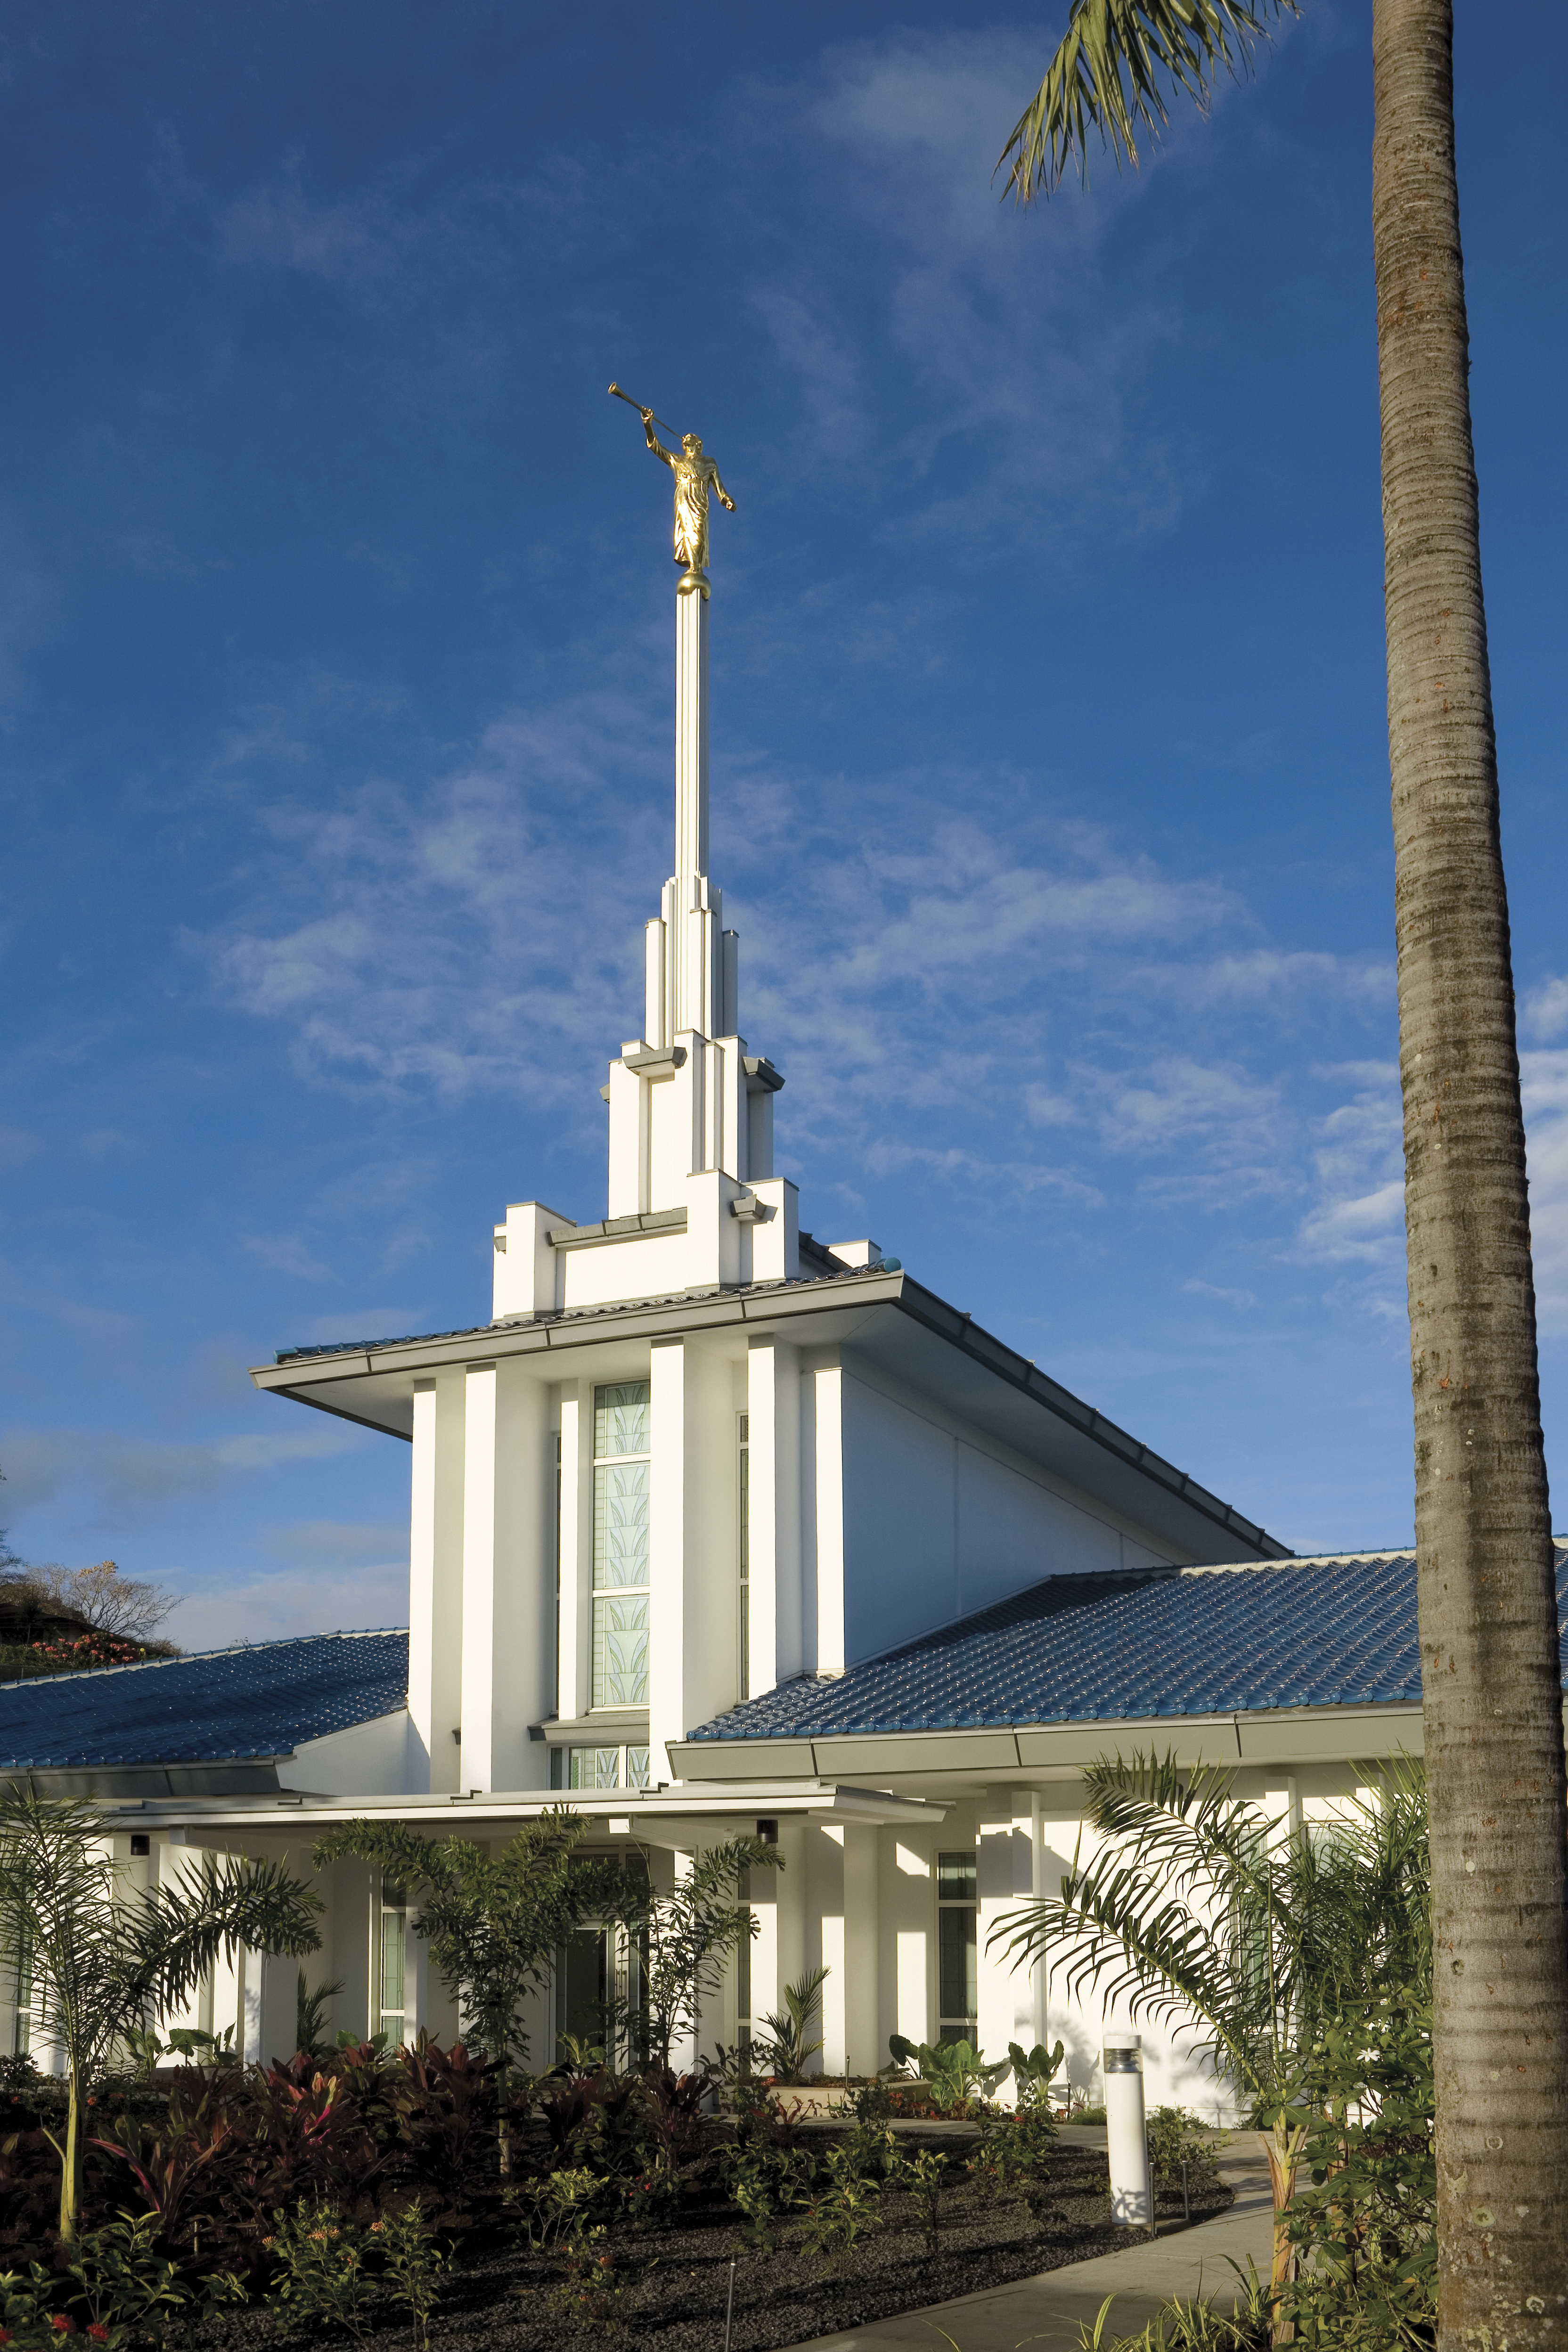 The Papeete Tahiti Temple, including the entrance and exterior of the temple.